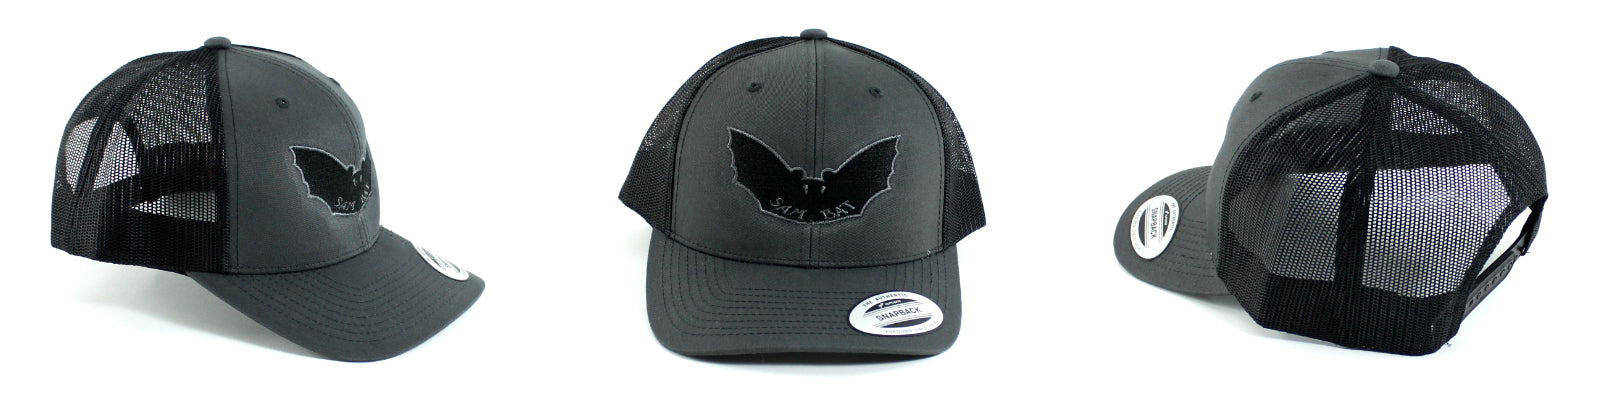 Sam Bat Retro Trucker - Black/Grey